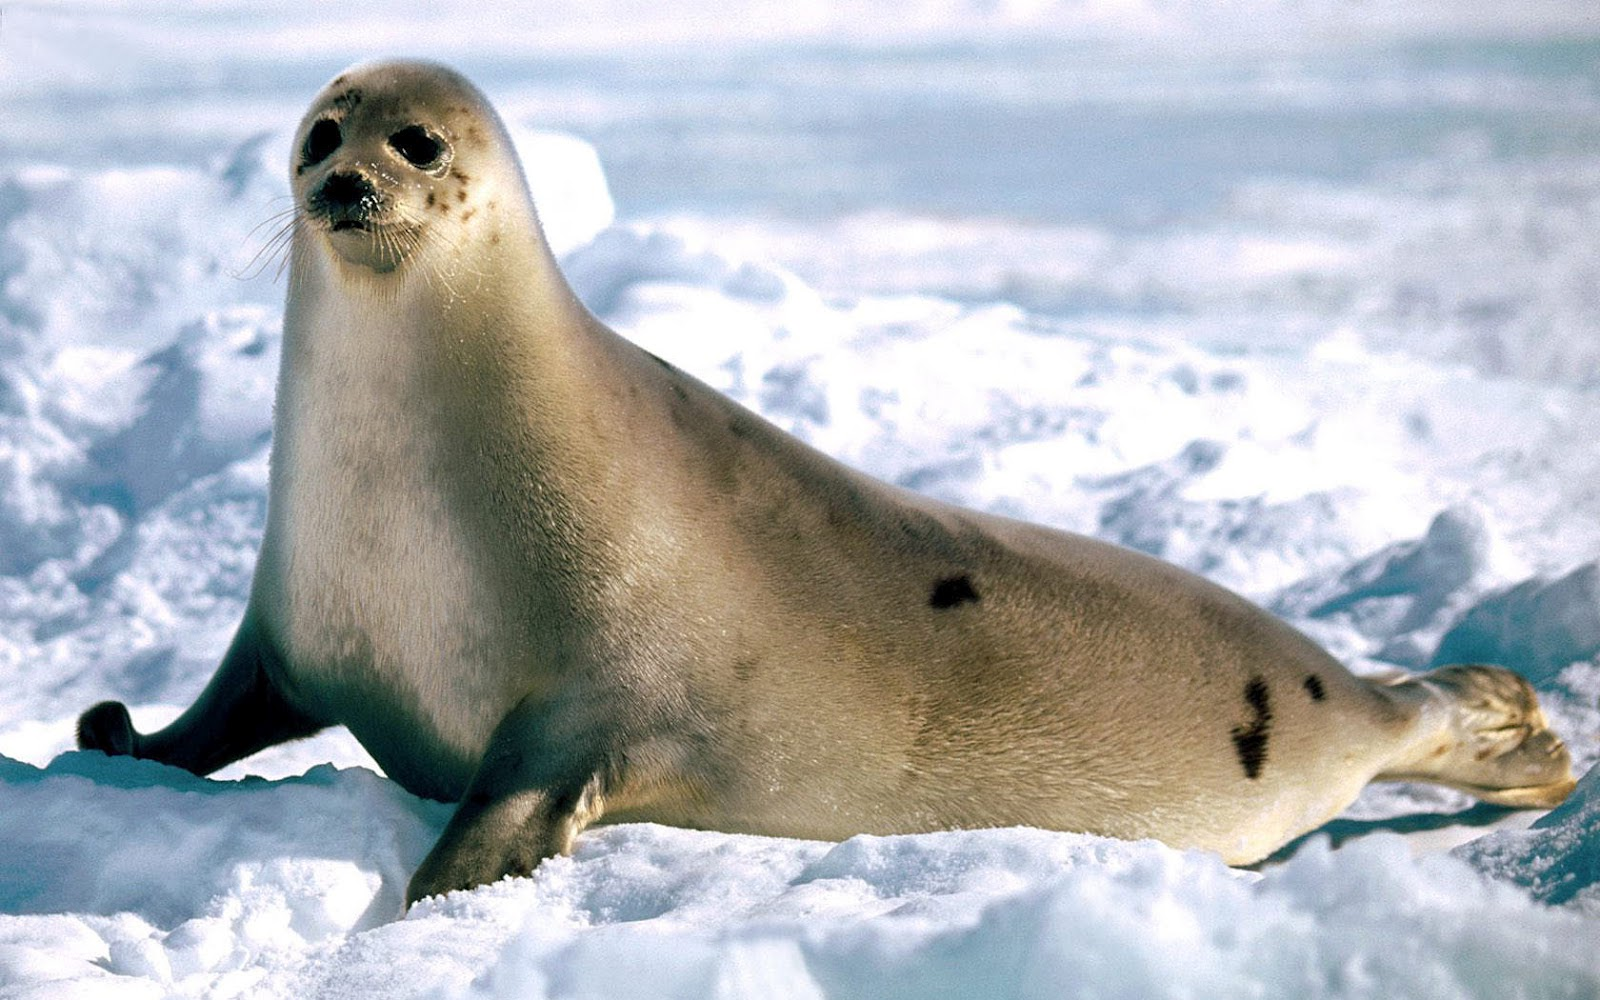 Seal  HD Animal Wallpaper Wallpaper